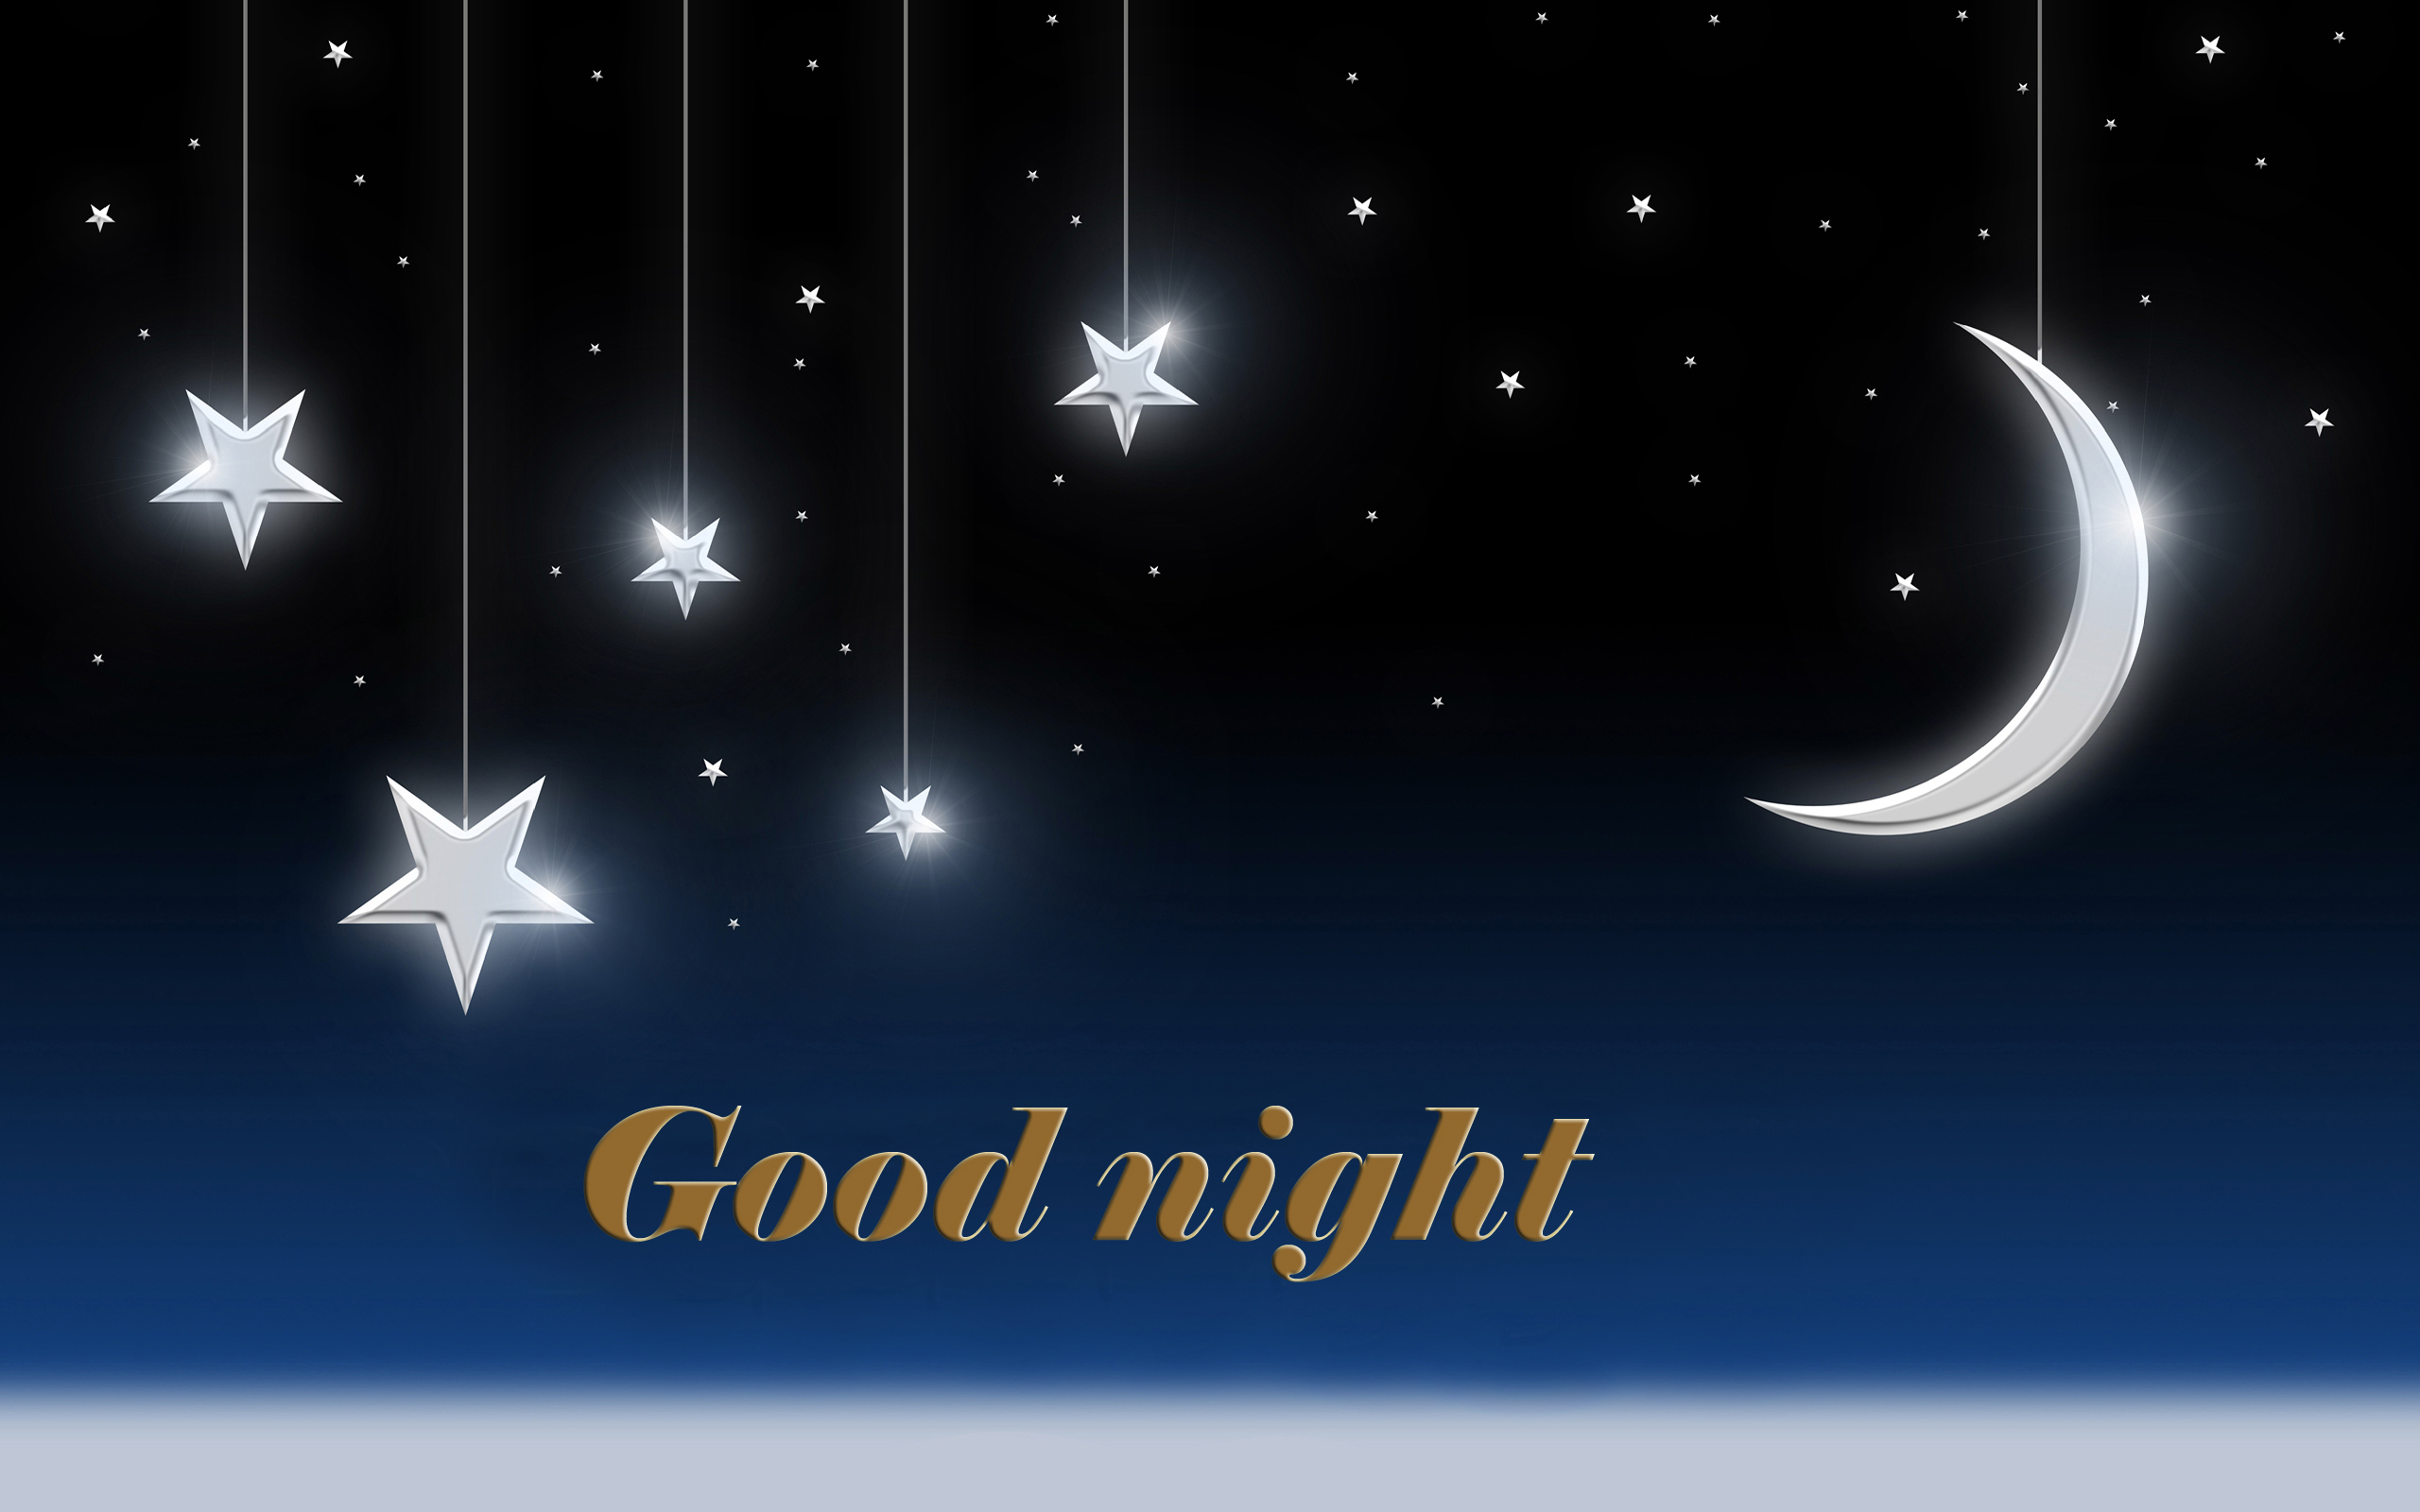 Good night sms only messages m4hsunfo